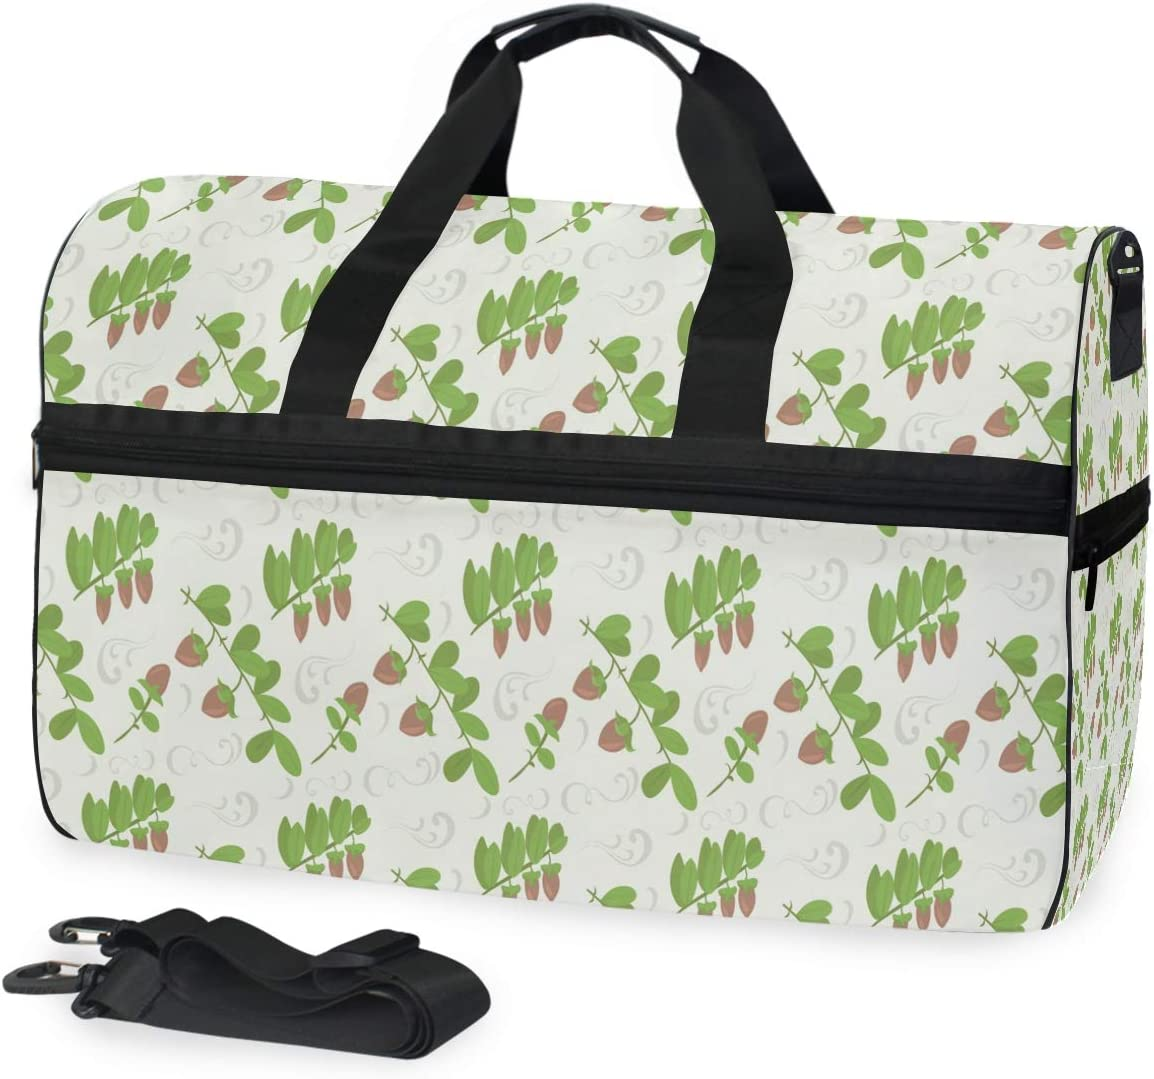 MUOOUM Nuts Leaves Green Cute Large Duffle Bags Sports Gym Bag with Shoes Compartment for Men and Women